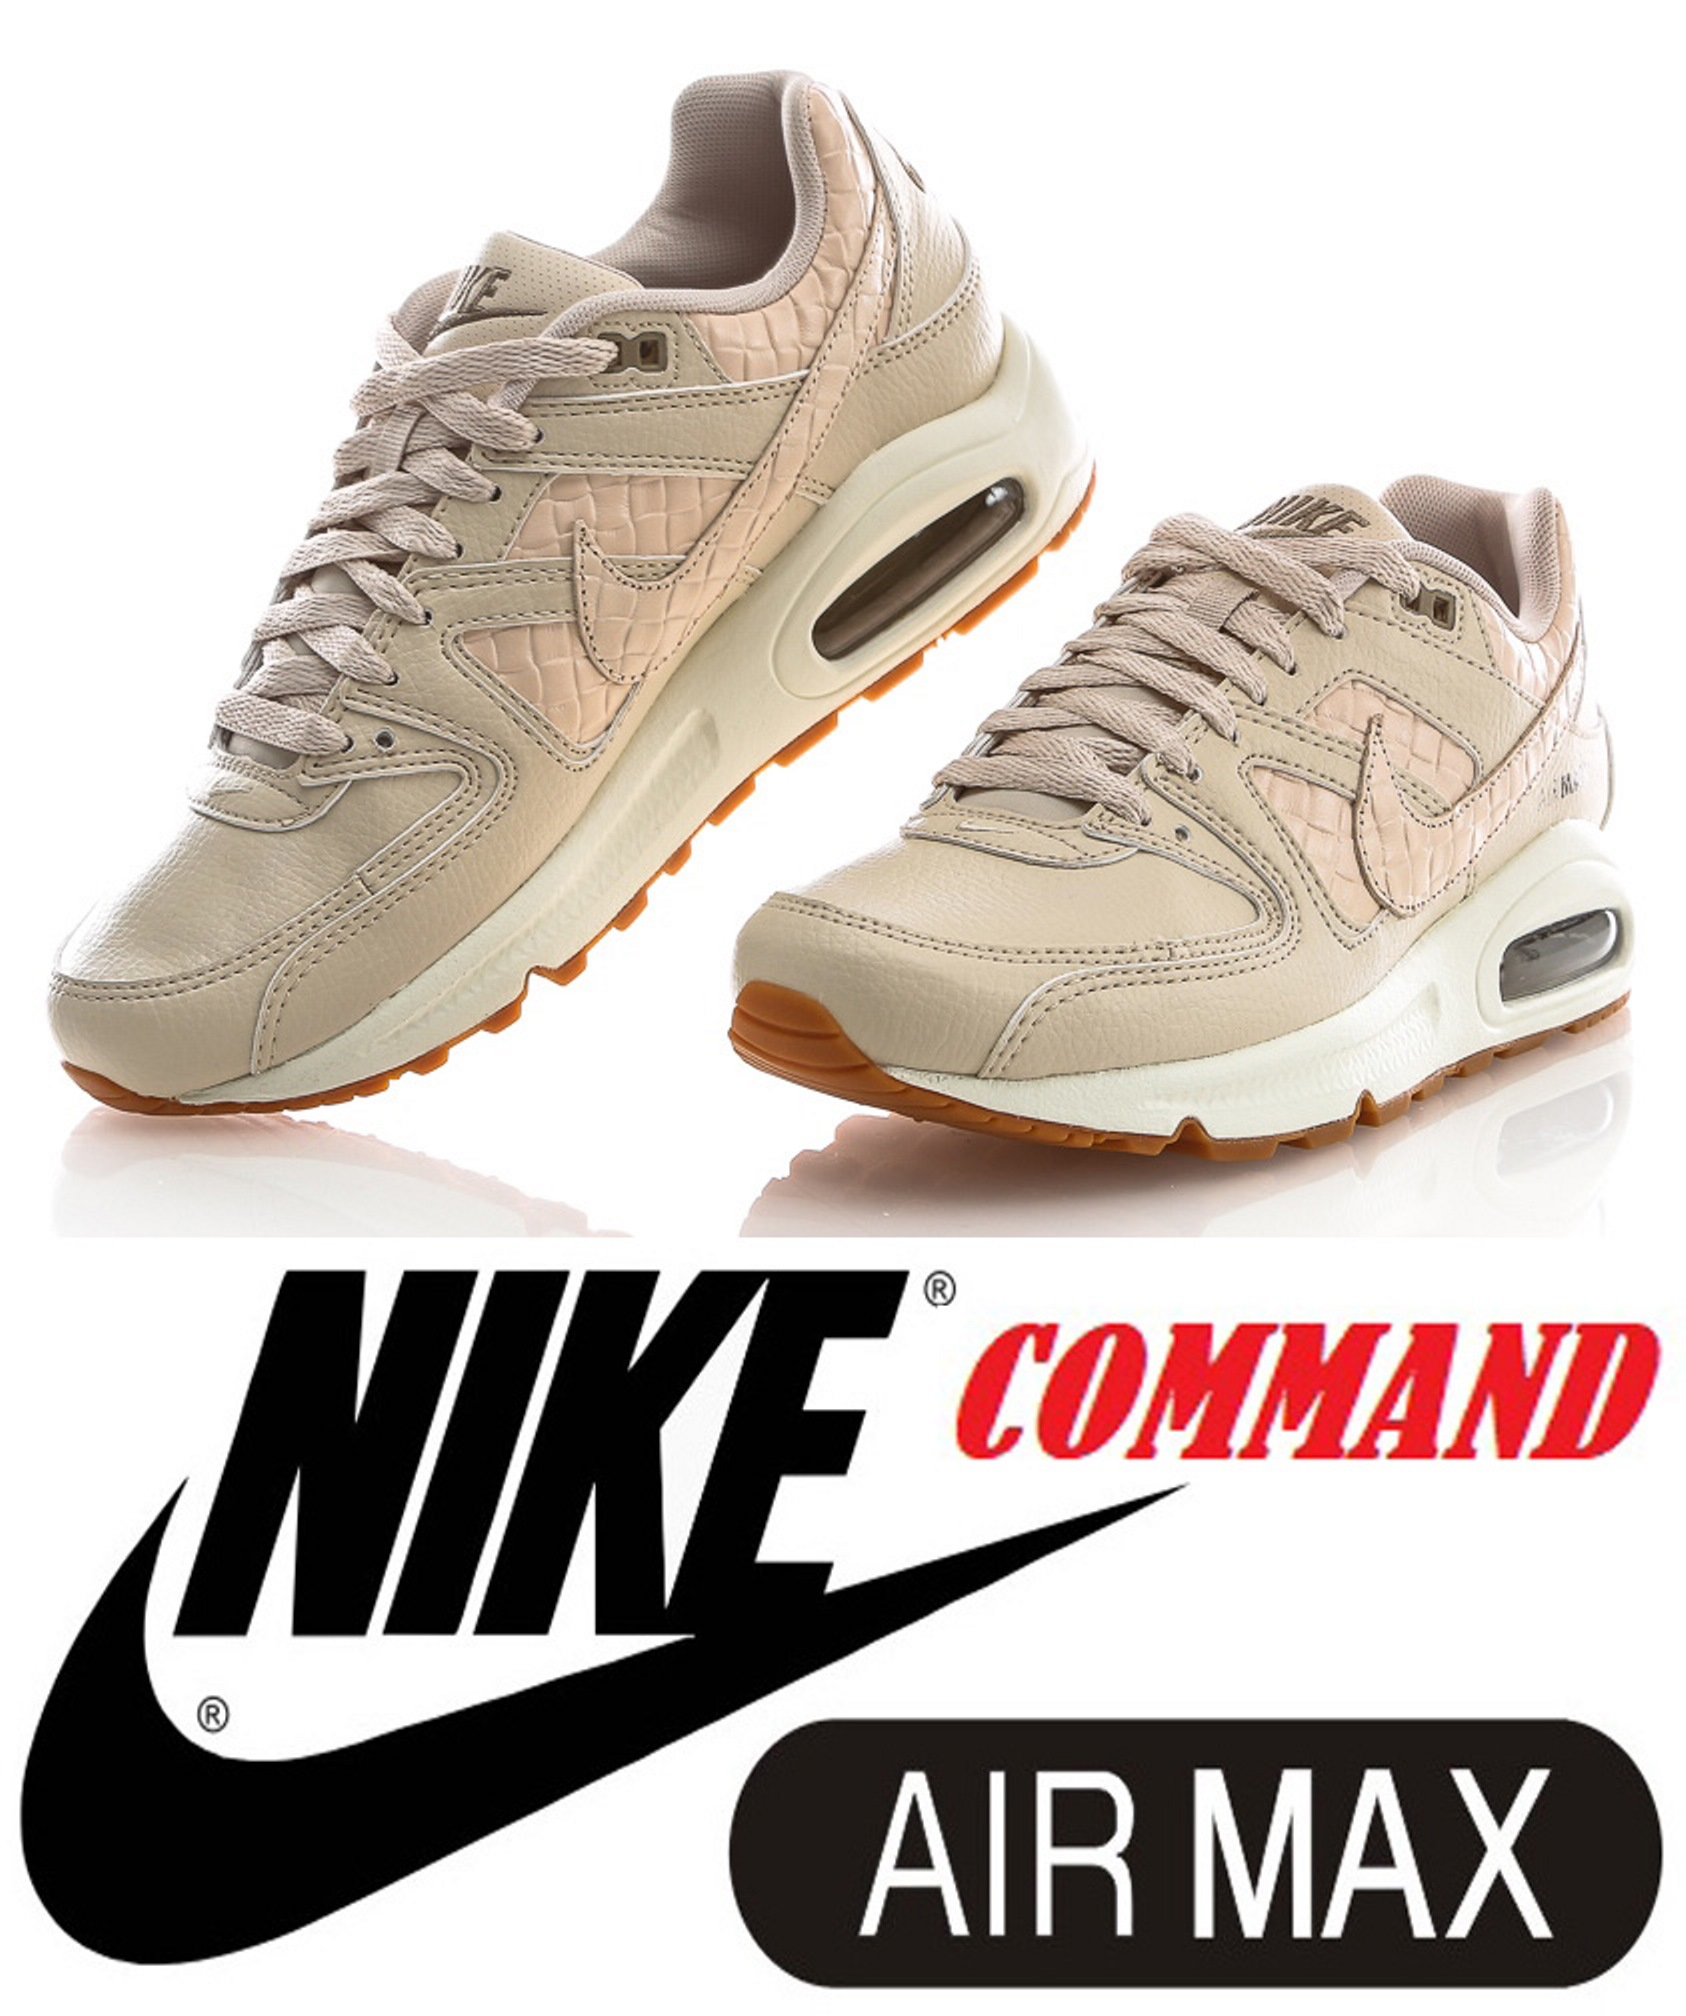 Tenisky zn. NIKE AIR MAX COMMAND PRM vel. 44